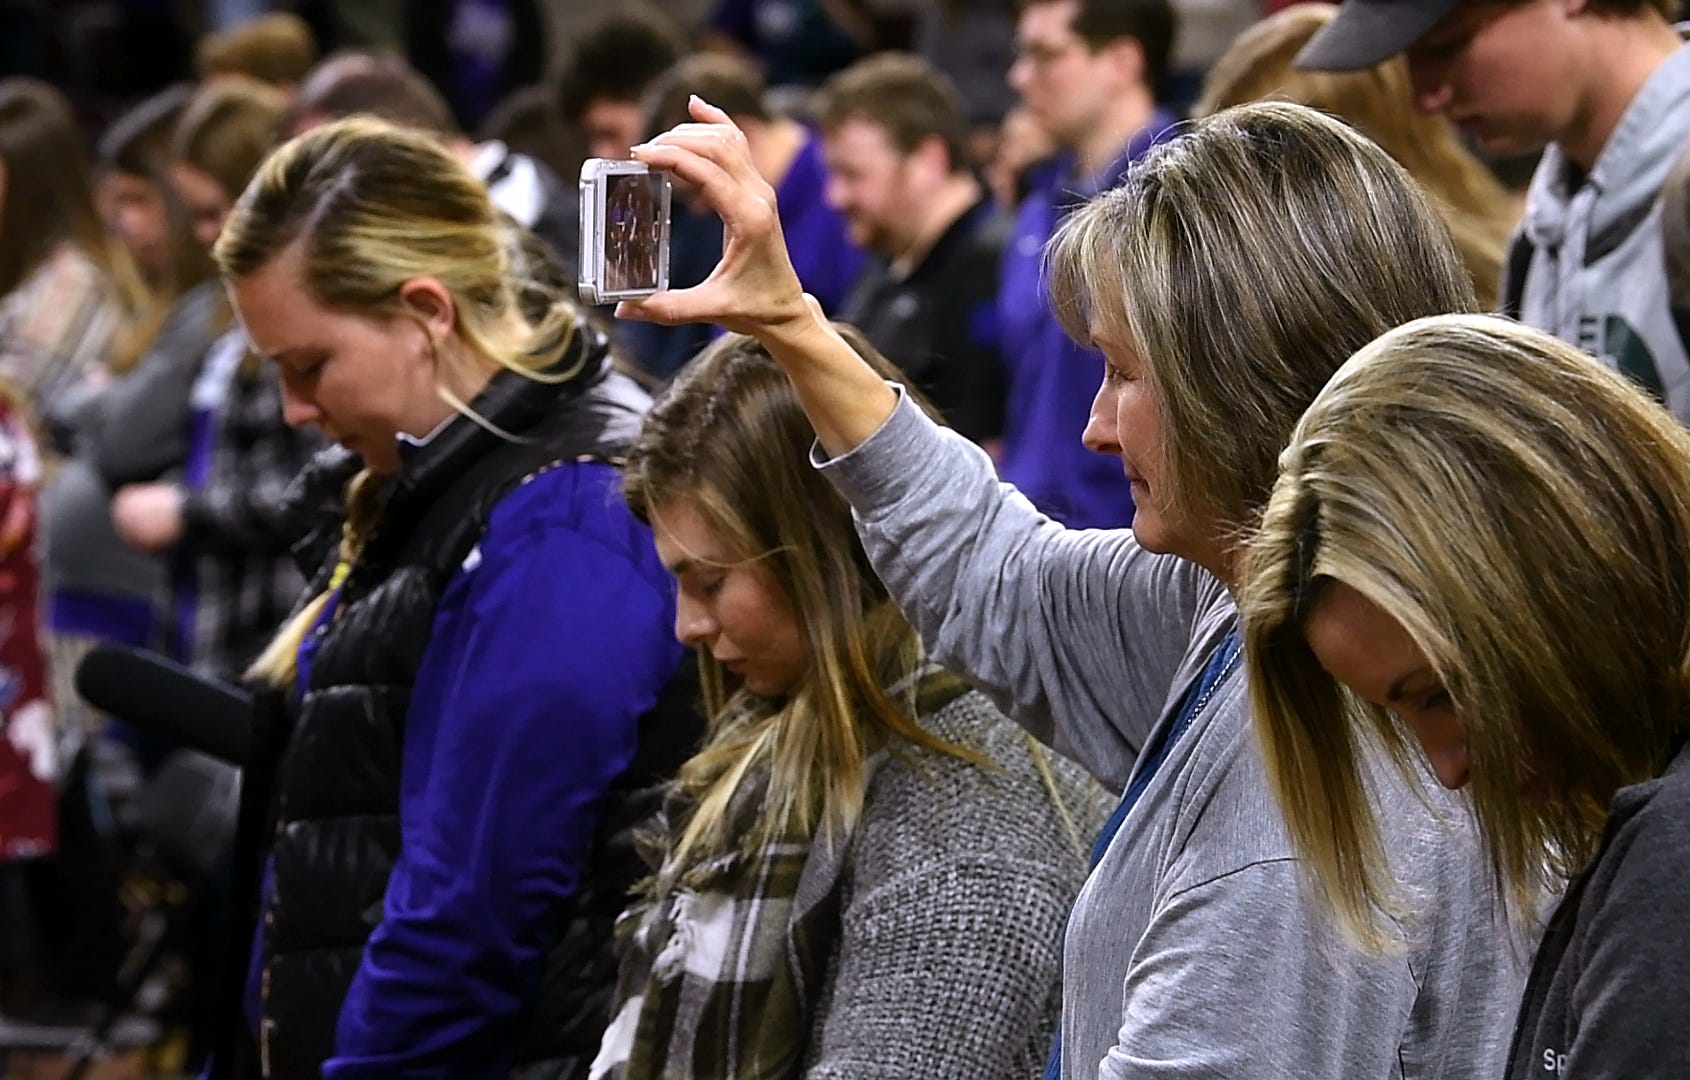 Audience members pray and record the moment during chapel Monday at Abilene Christian University's Moody Coliseum.